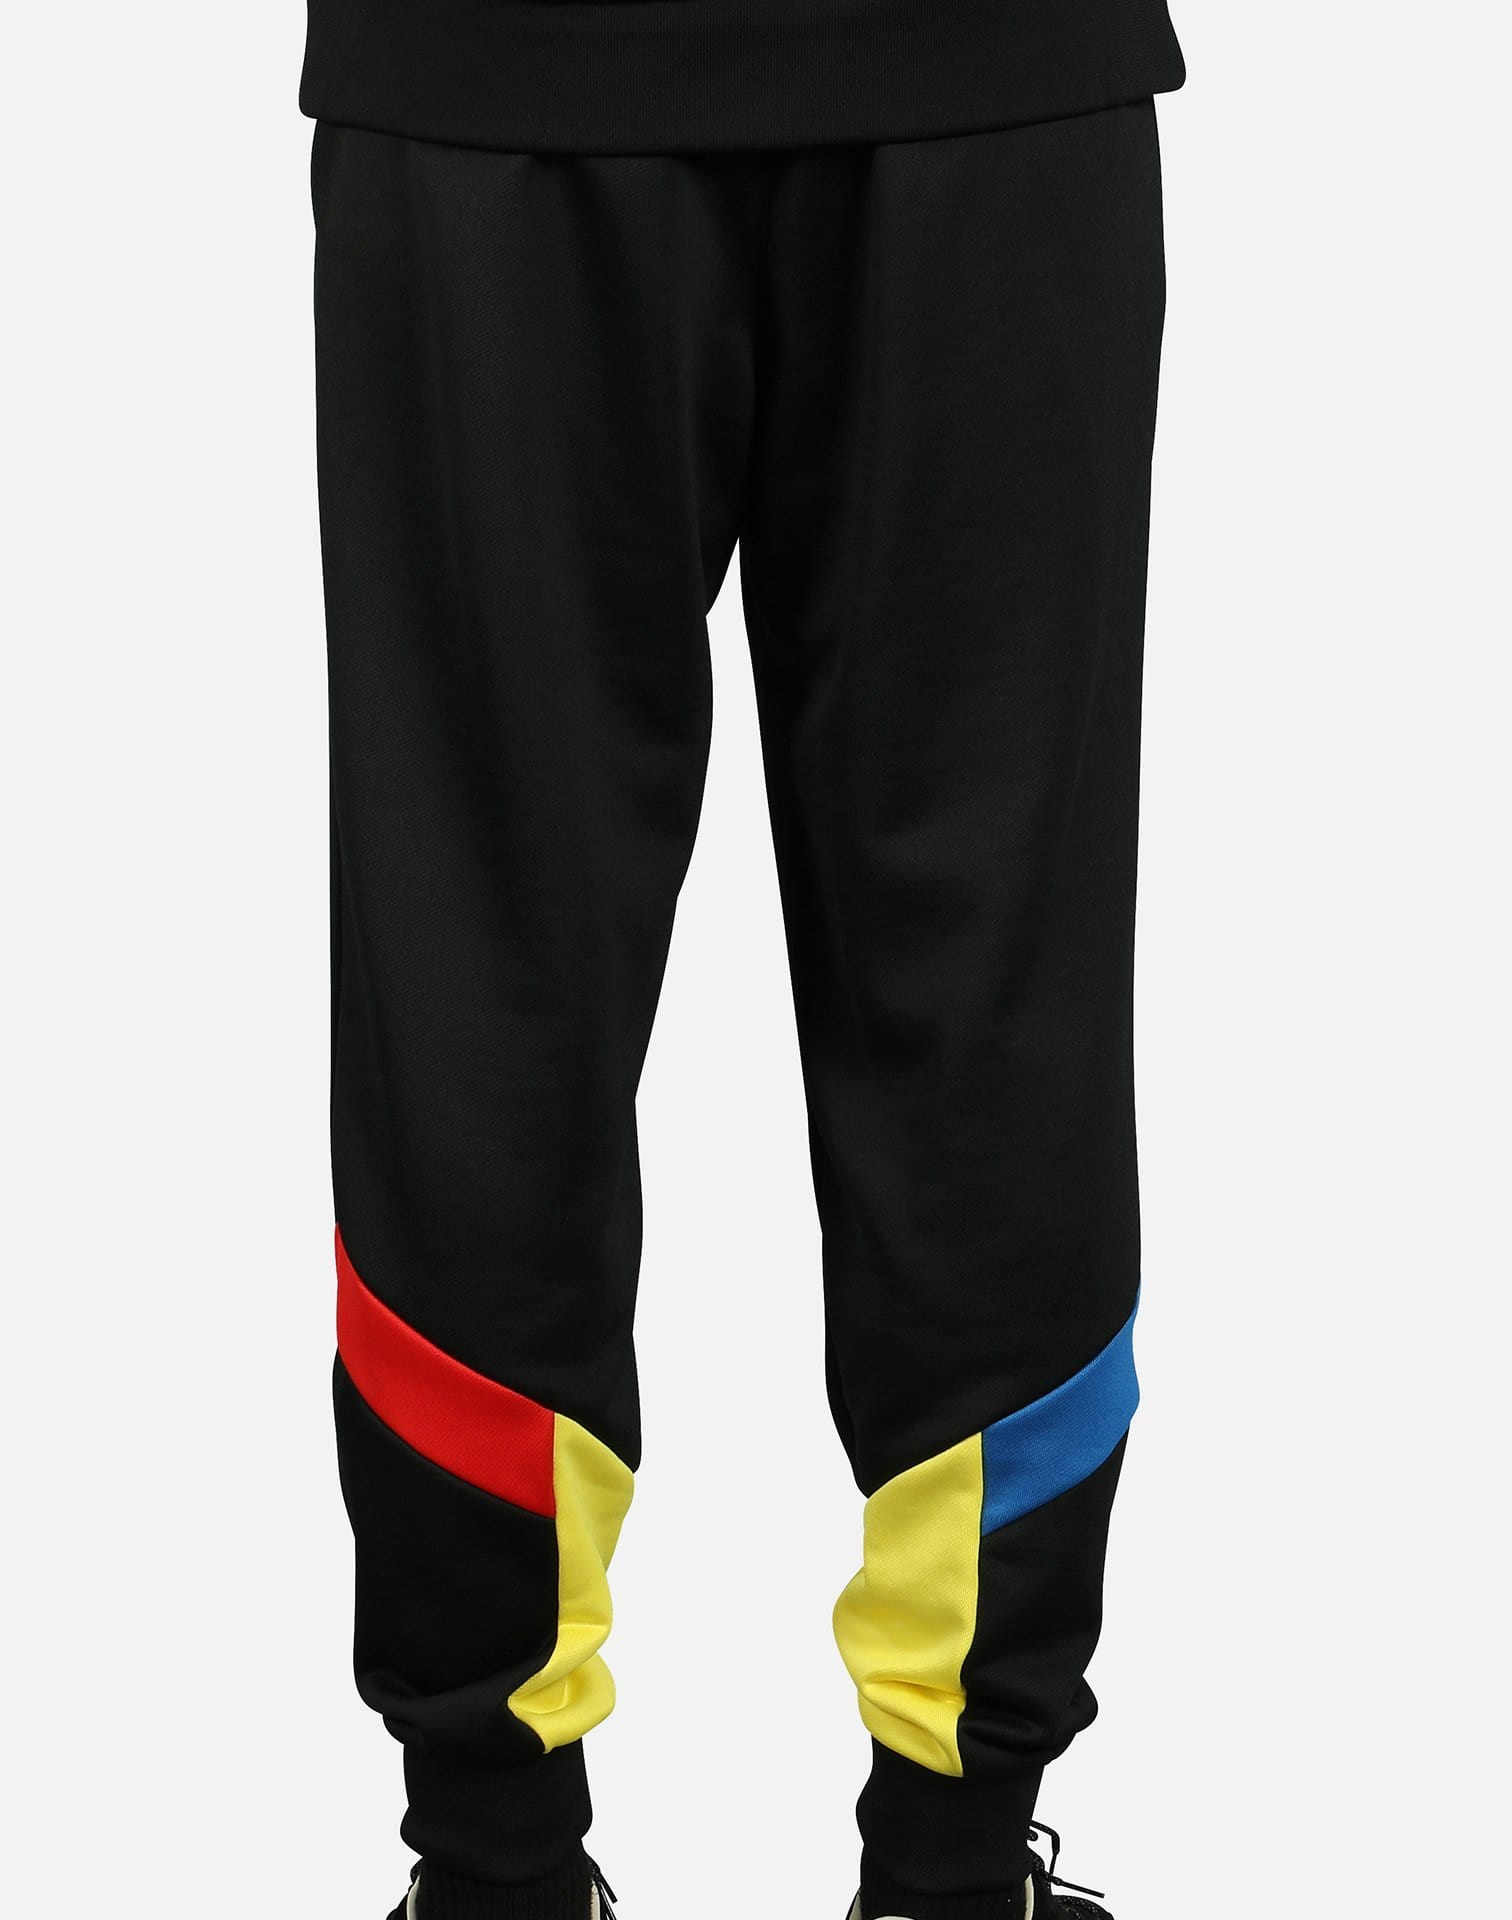 PUMA Men's Iconic MCS Track Pants